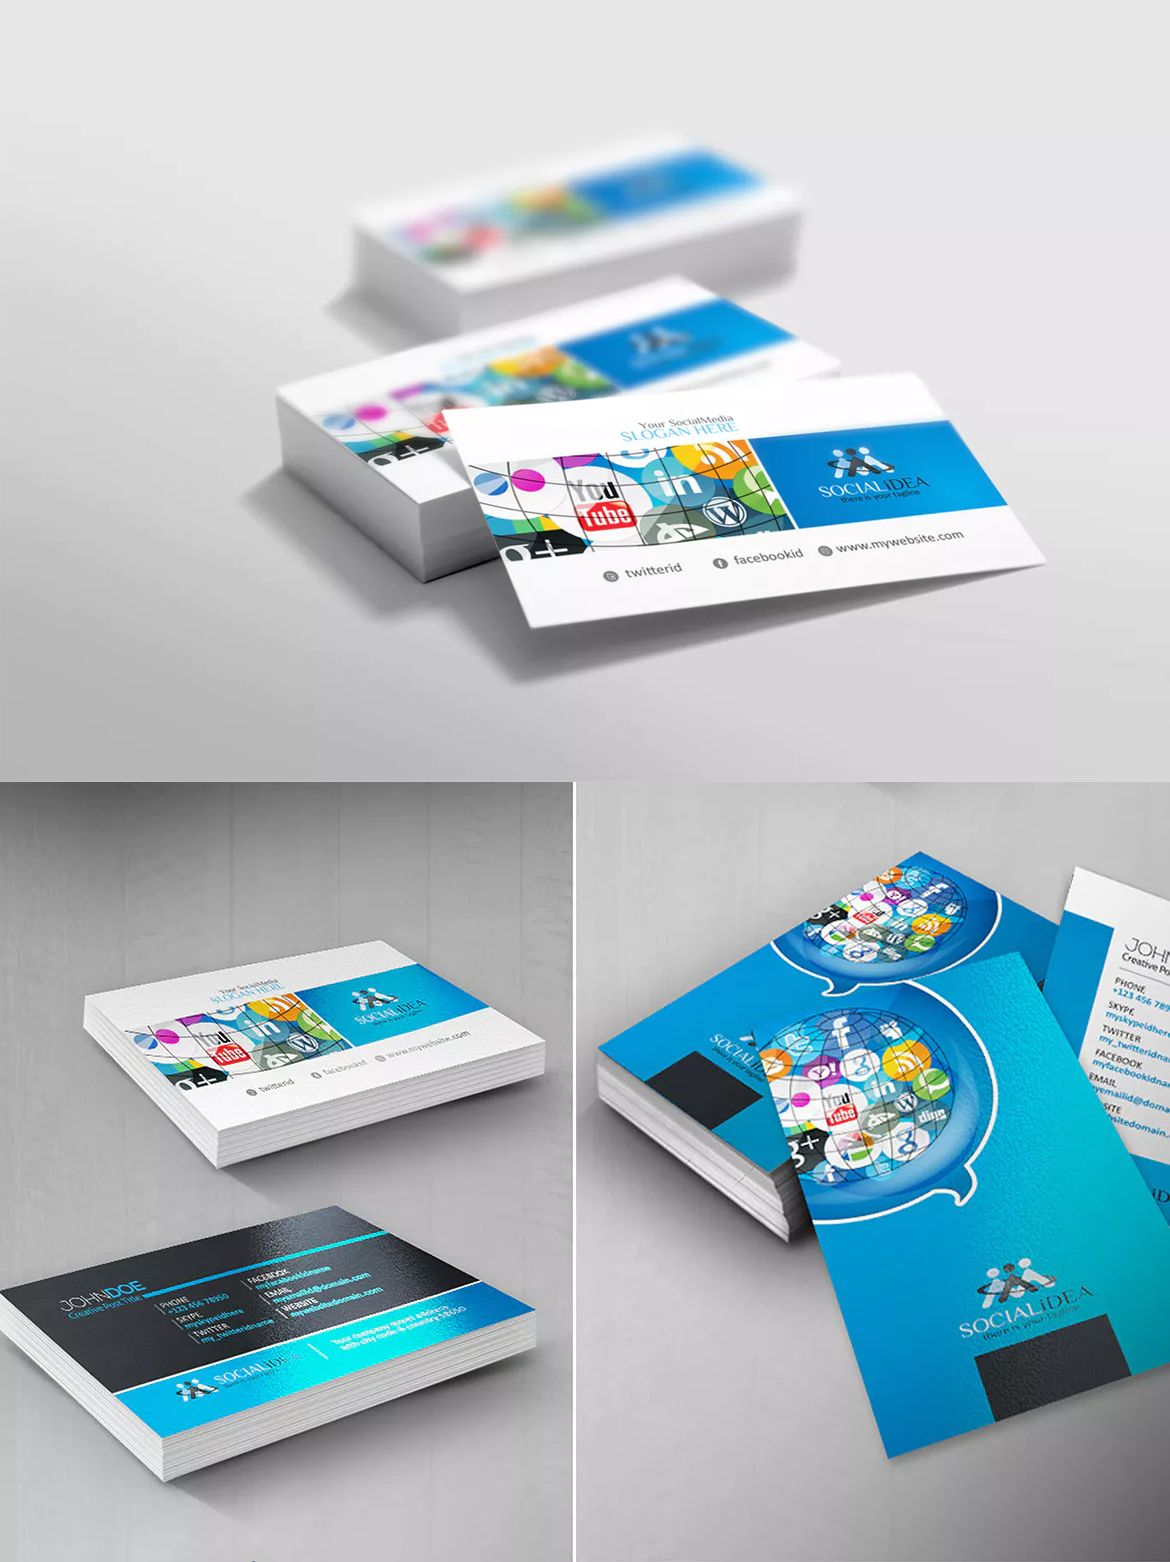 Social media business card template eps business card templates social media business card template eps flashek Image collections